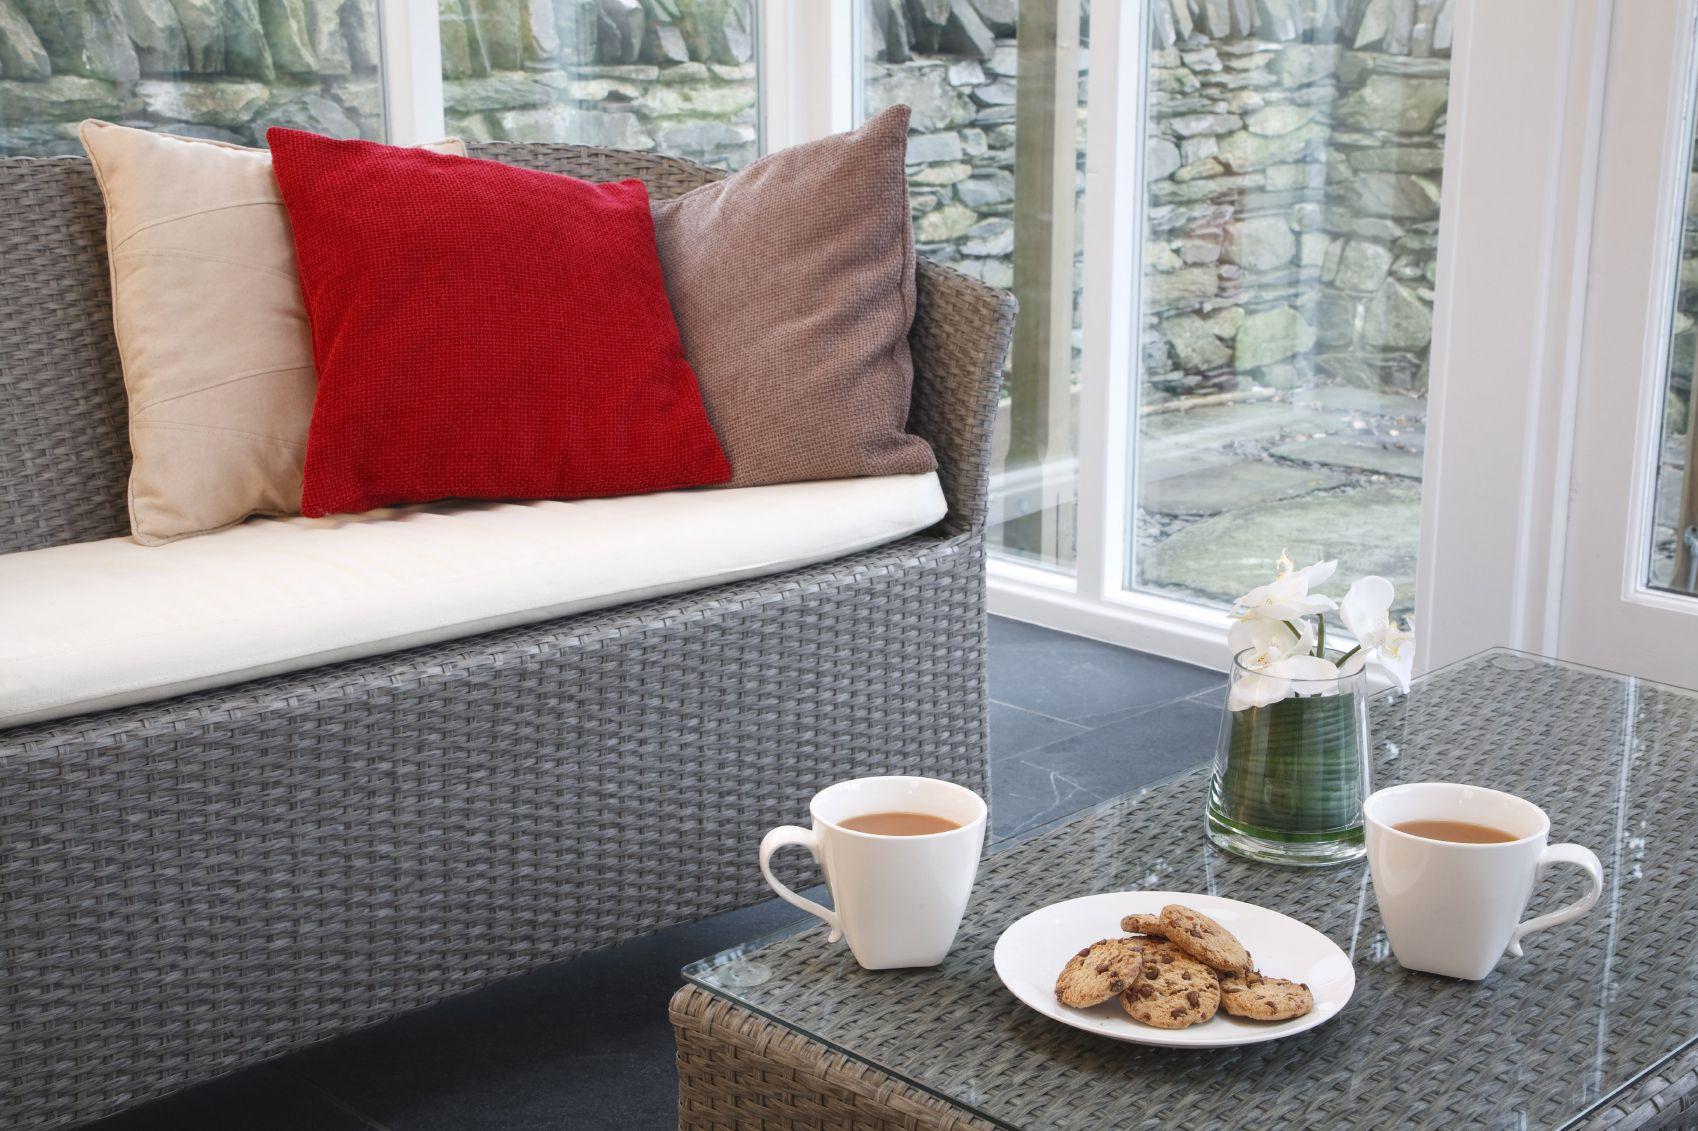 Conservatory interior design with rattan chairs and coffee table